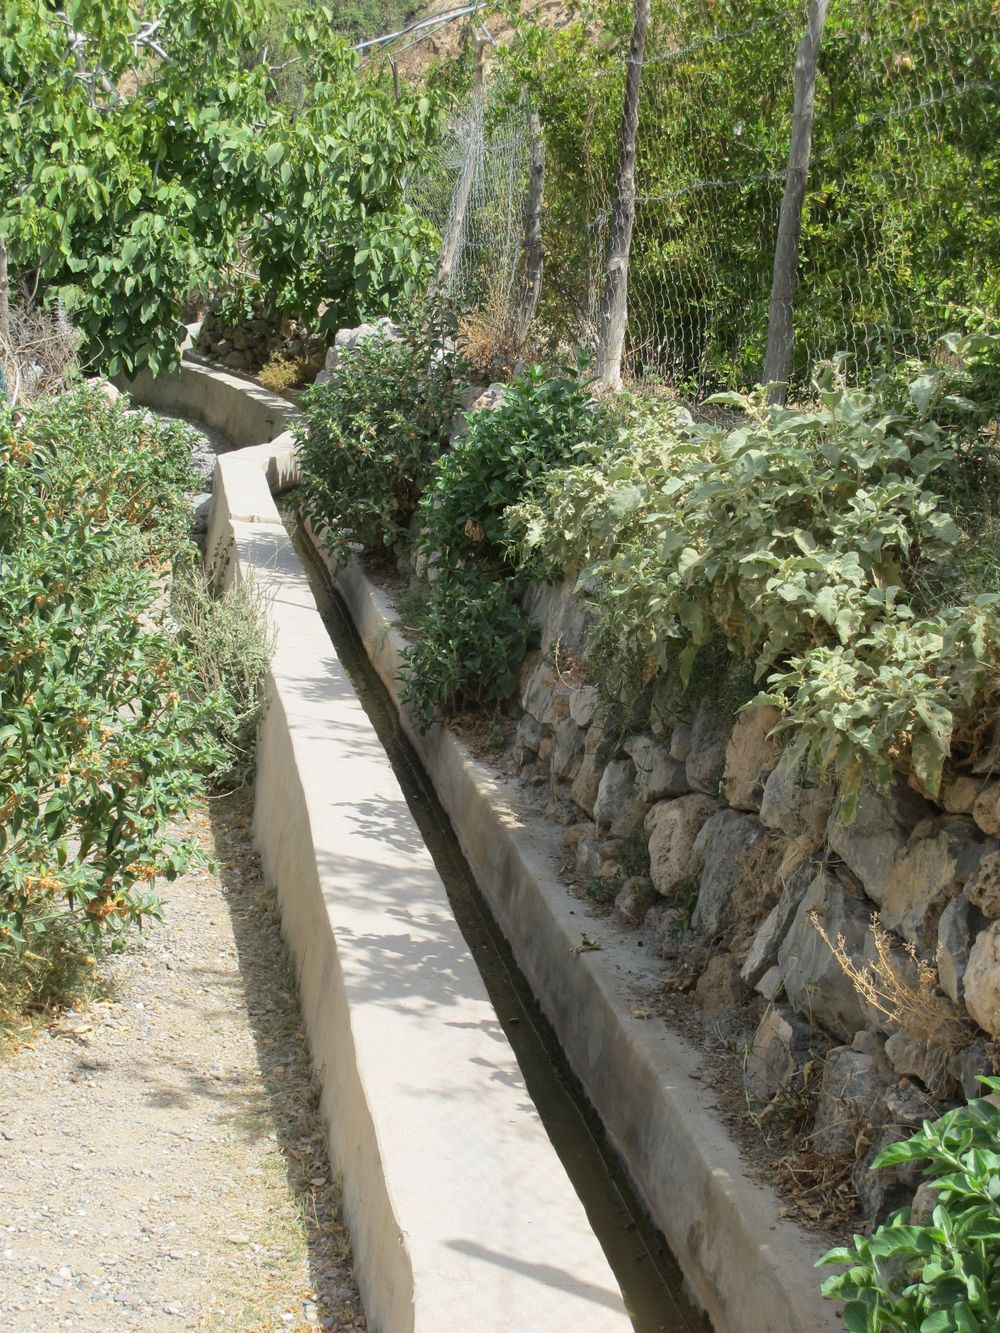 We saw aqueducts, wadis, and small shady pools in our treks around Jebel Akhdar.